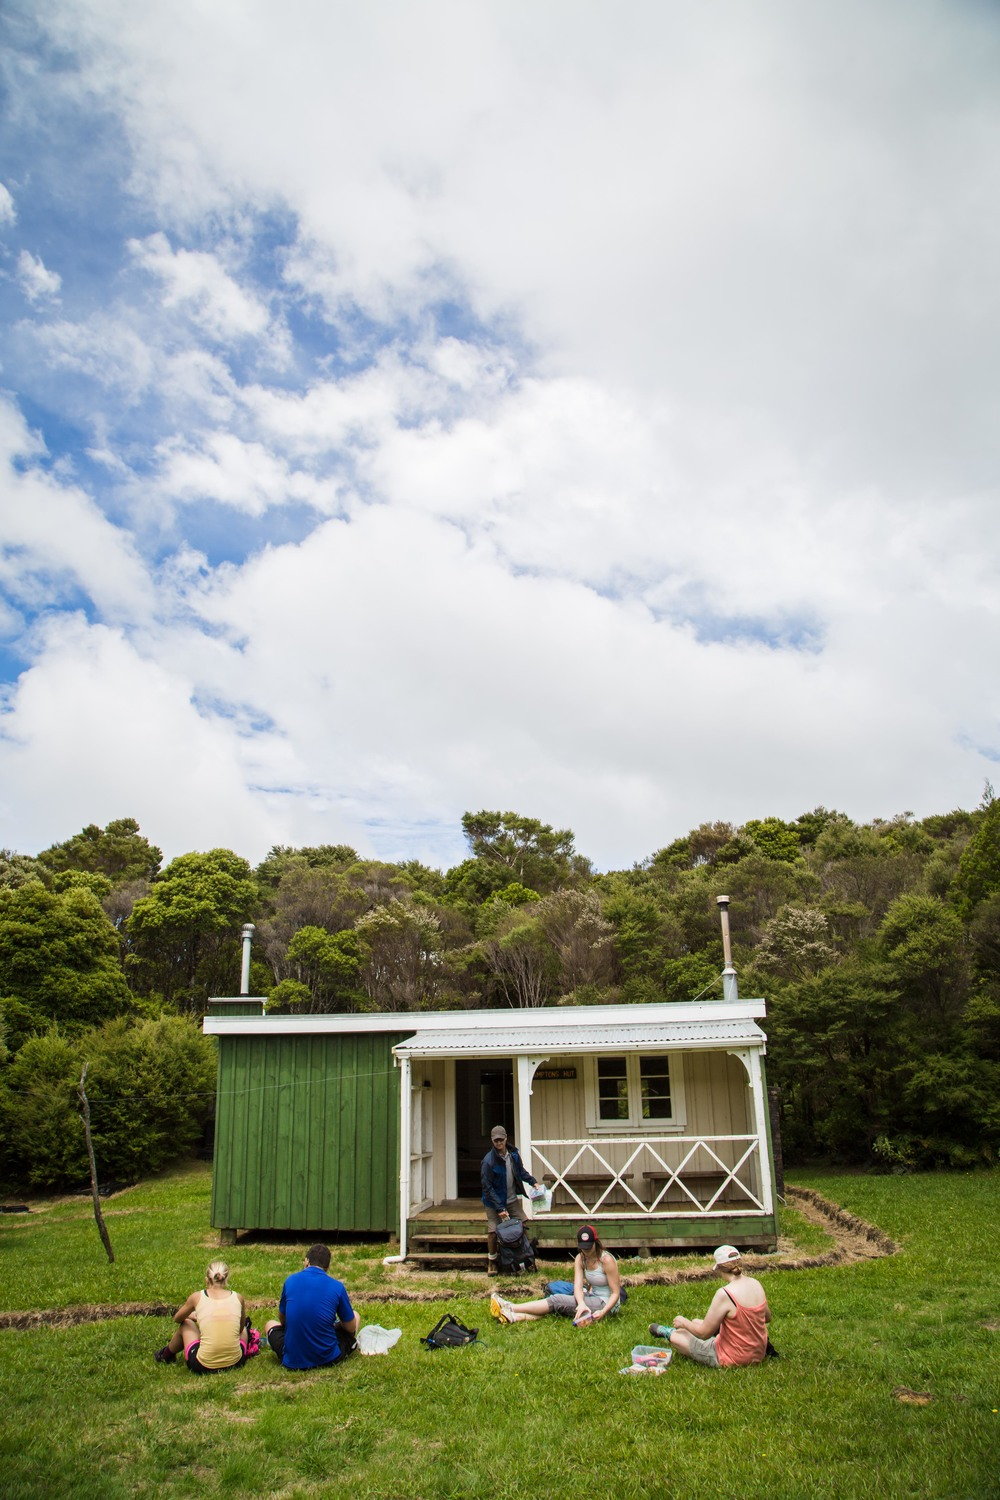 This was our lunch break at a DOC hut near the highest point north of Auckland.